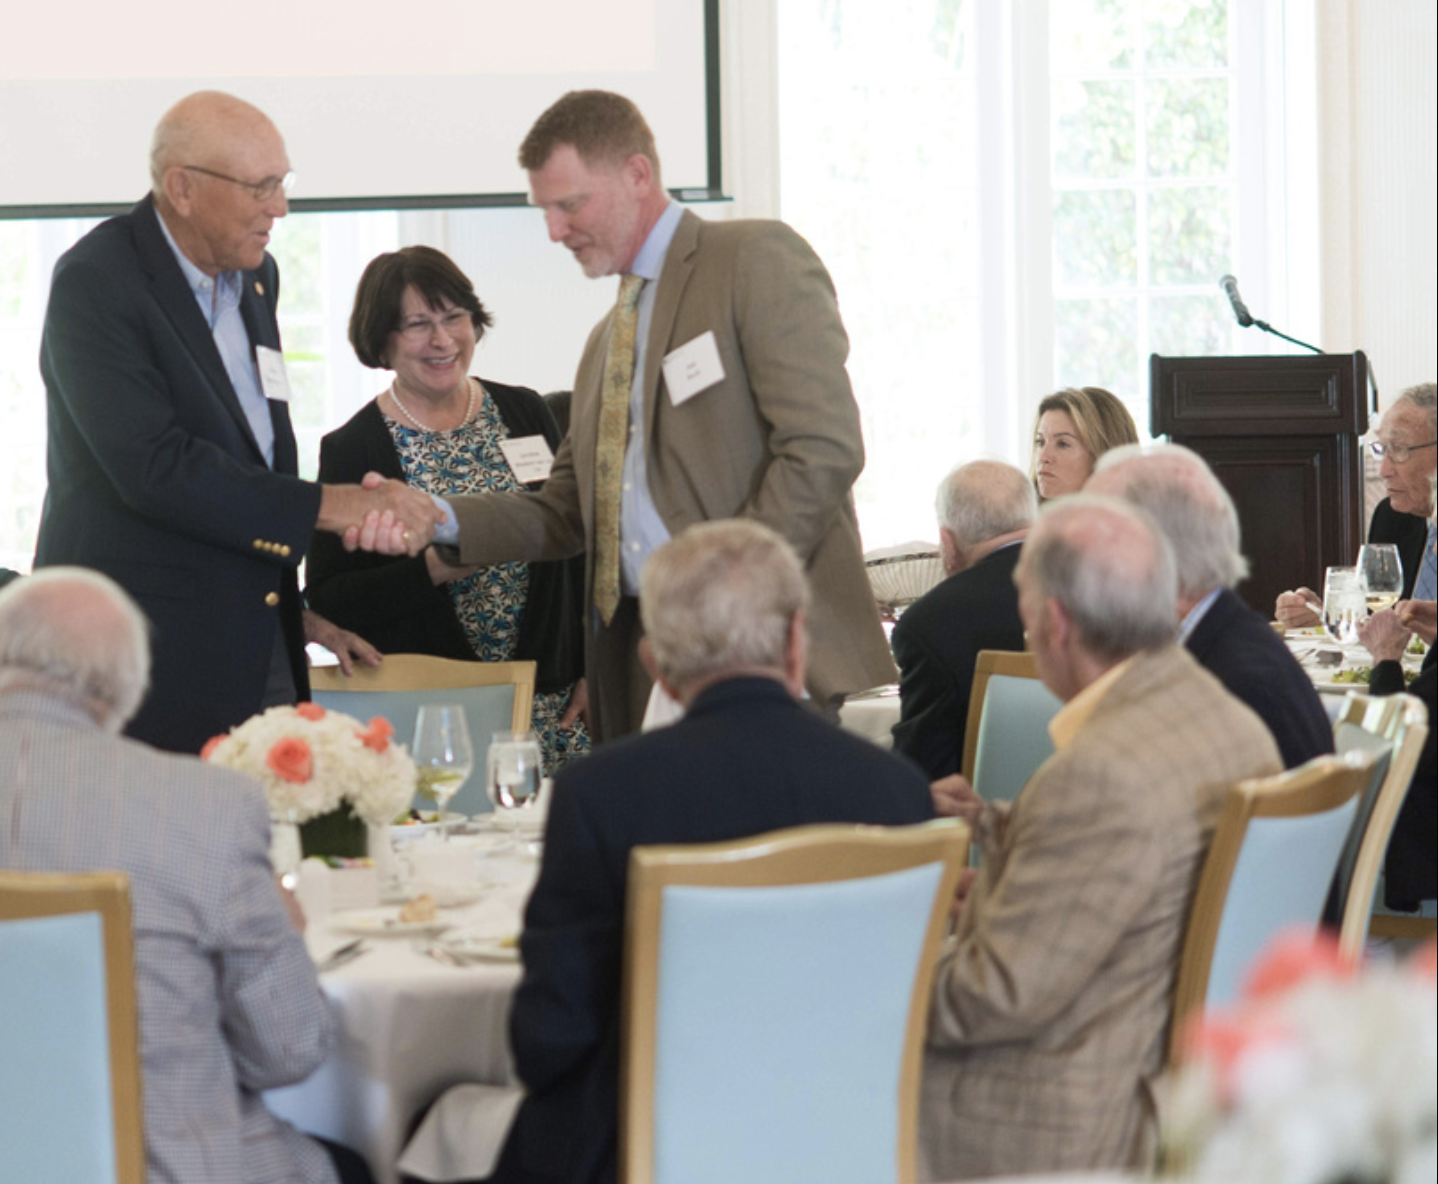 Richard Bradley '61 (left) was welcomed by Lorraine Wiedorn '84G '13P '17P, assistant vice president, planned giving, and Joe Buck, vice president, development and alumni relations, at the Tower Society event in Palm Beach, Florida.